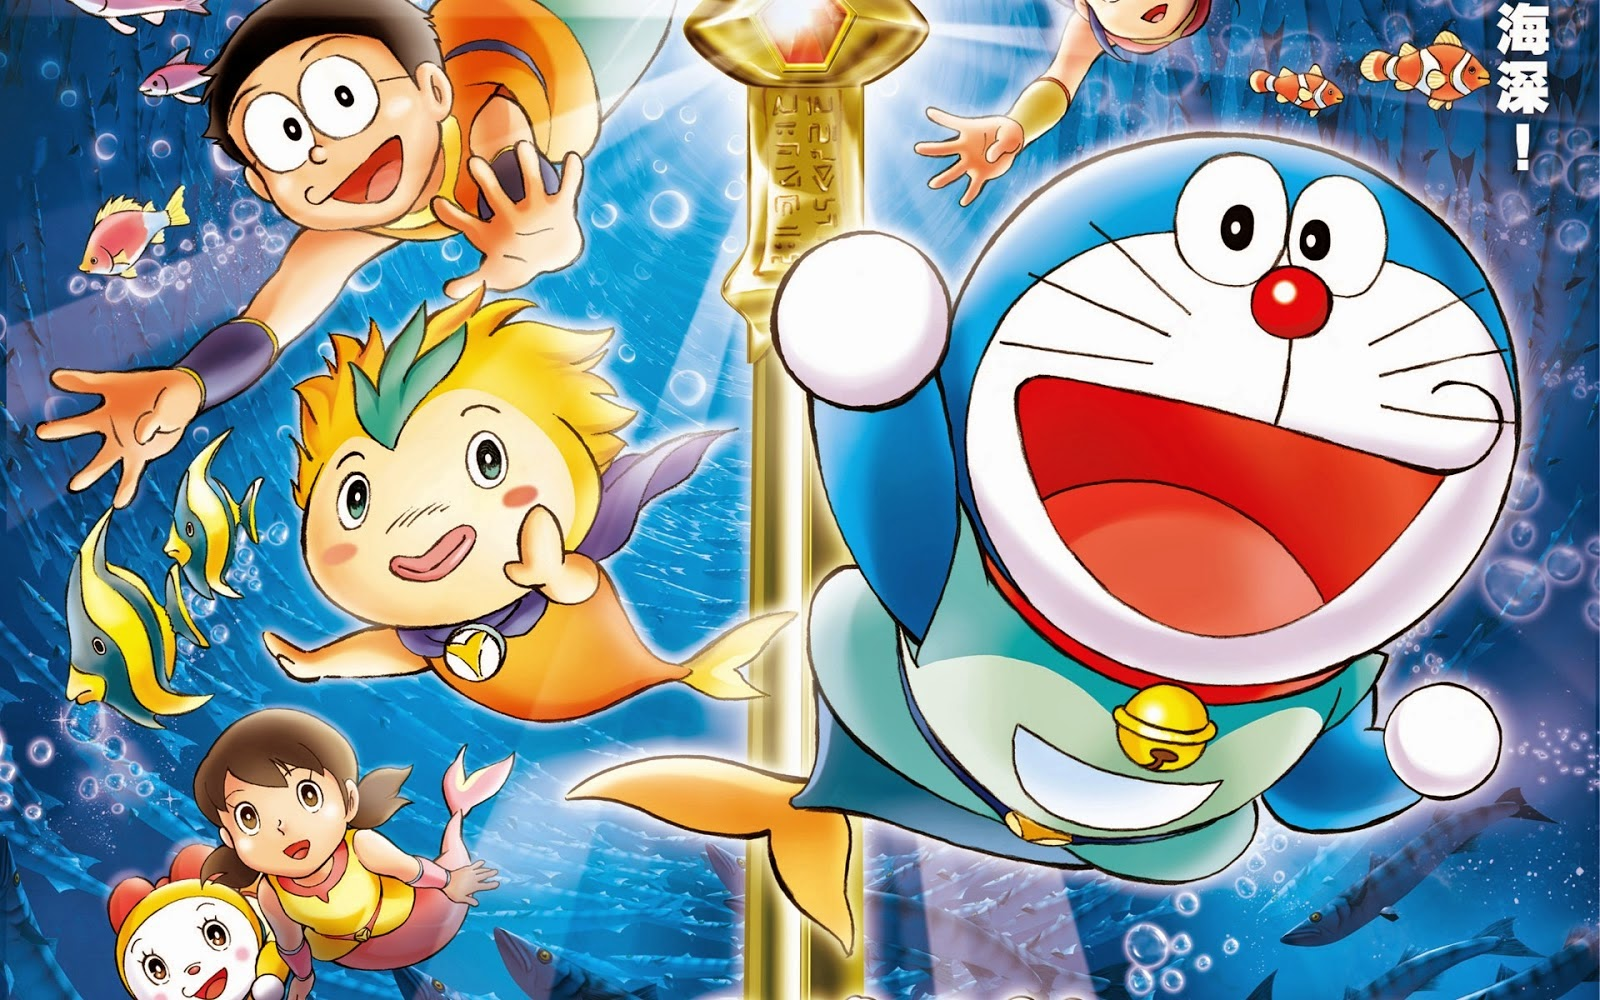 Cartoons videos doraemon cartoon 3 gp download for Domon in urdu